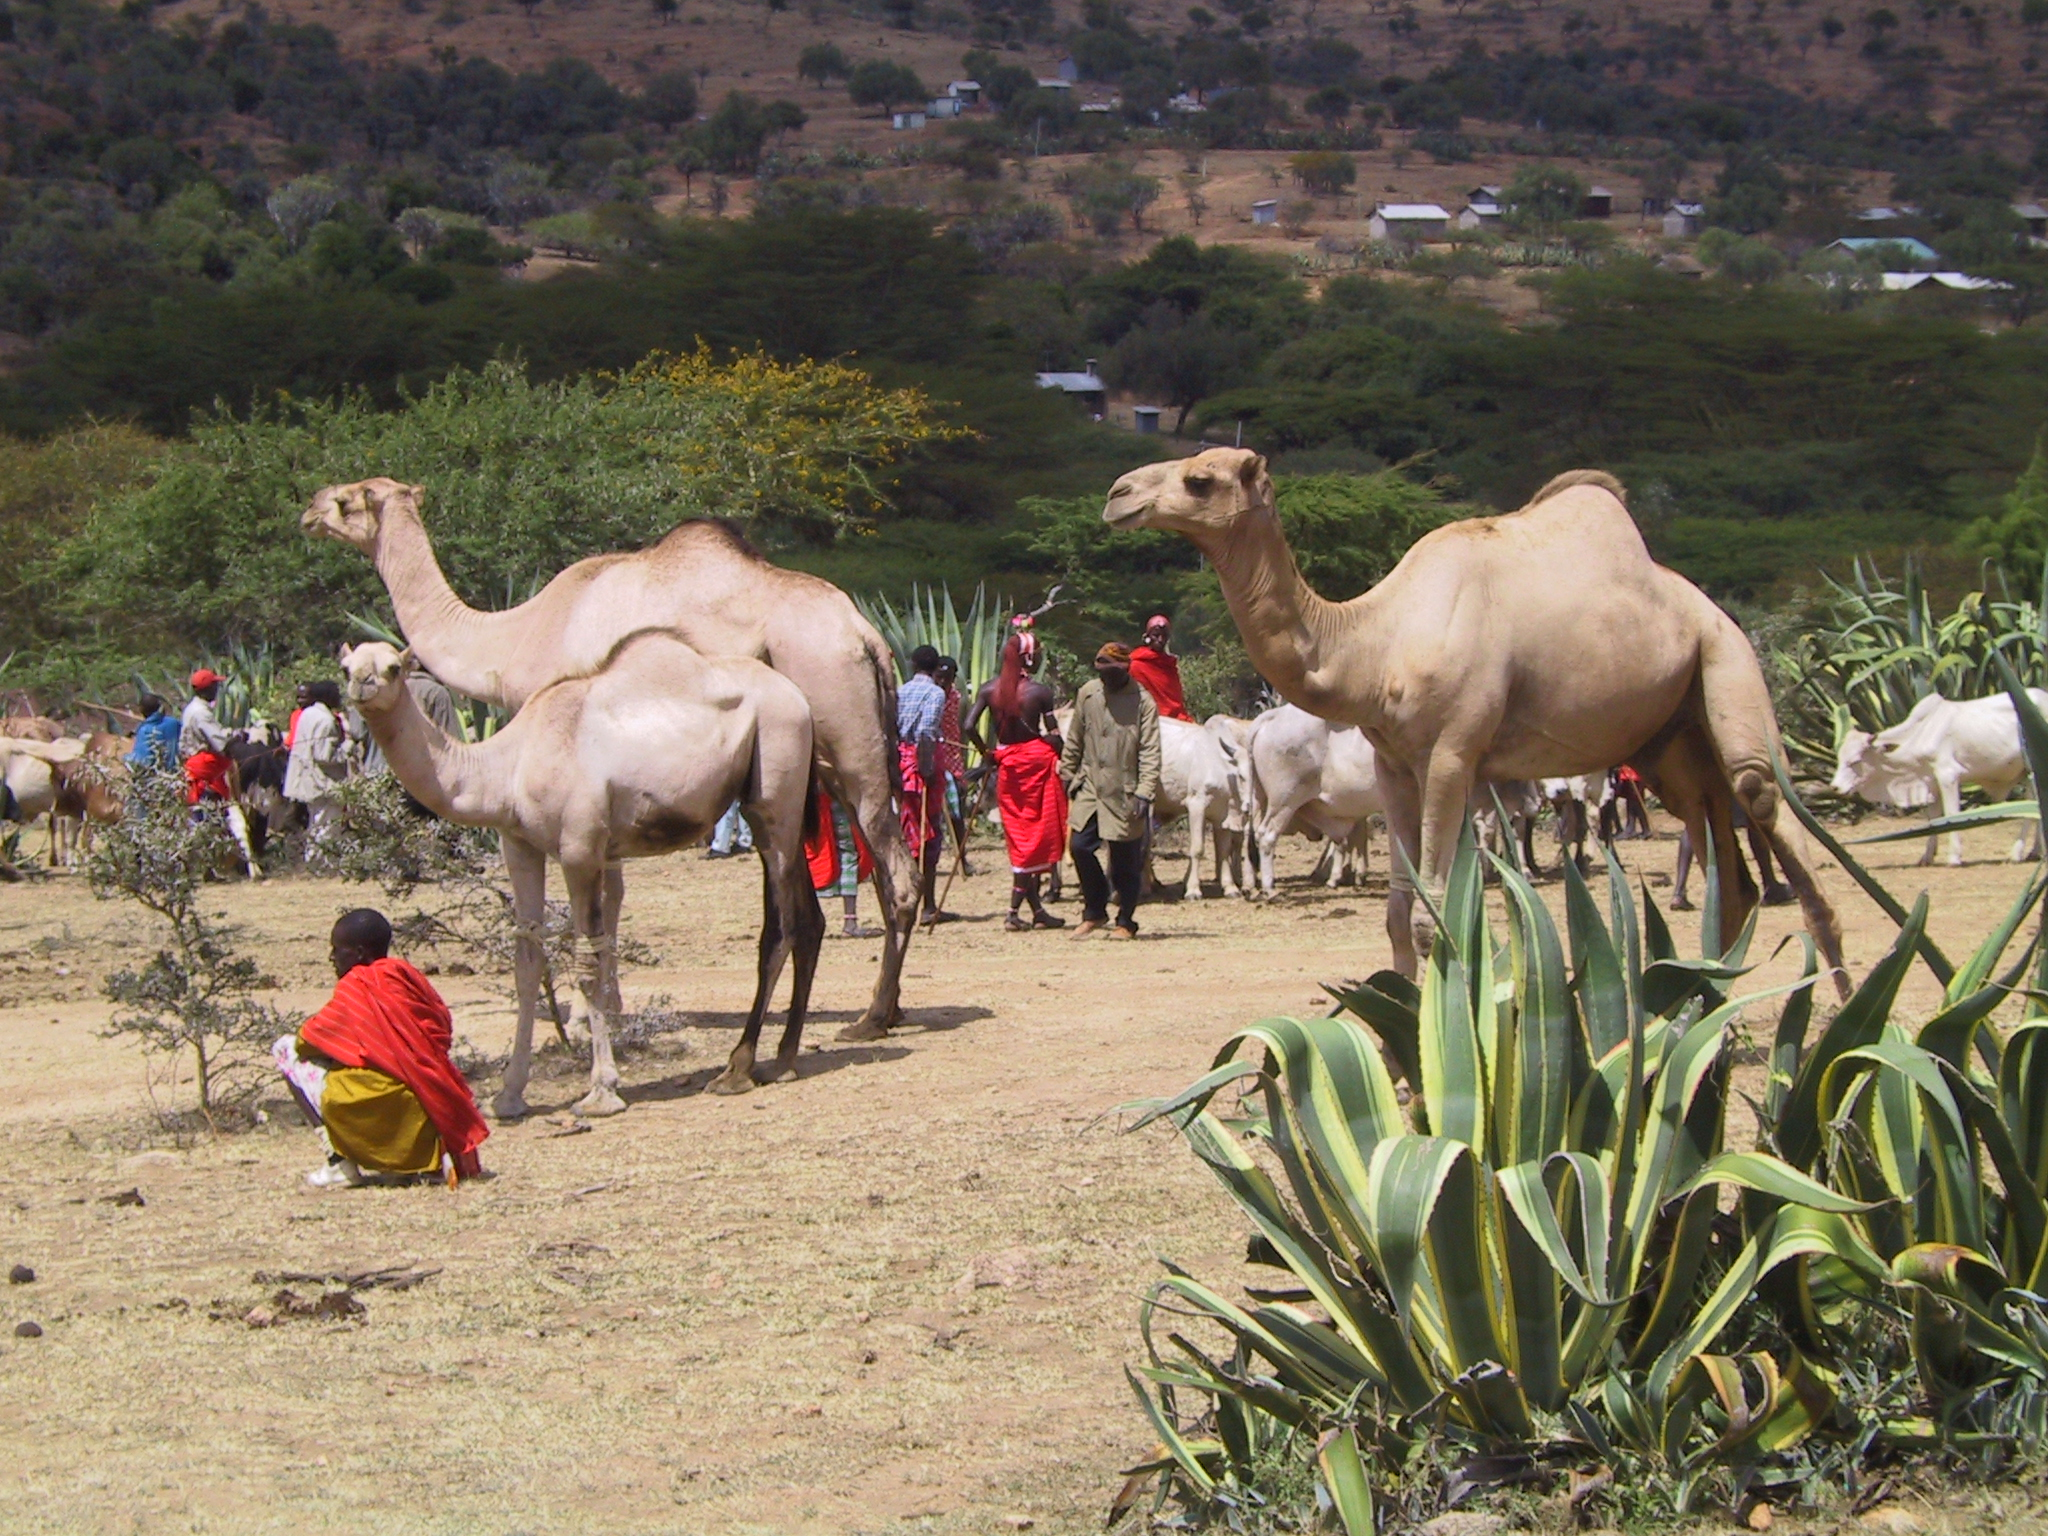 Camels roam a market in central Kenya. The animals were domesticated in the region about 5,000 years ago.